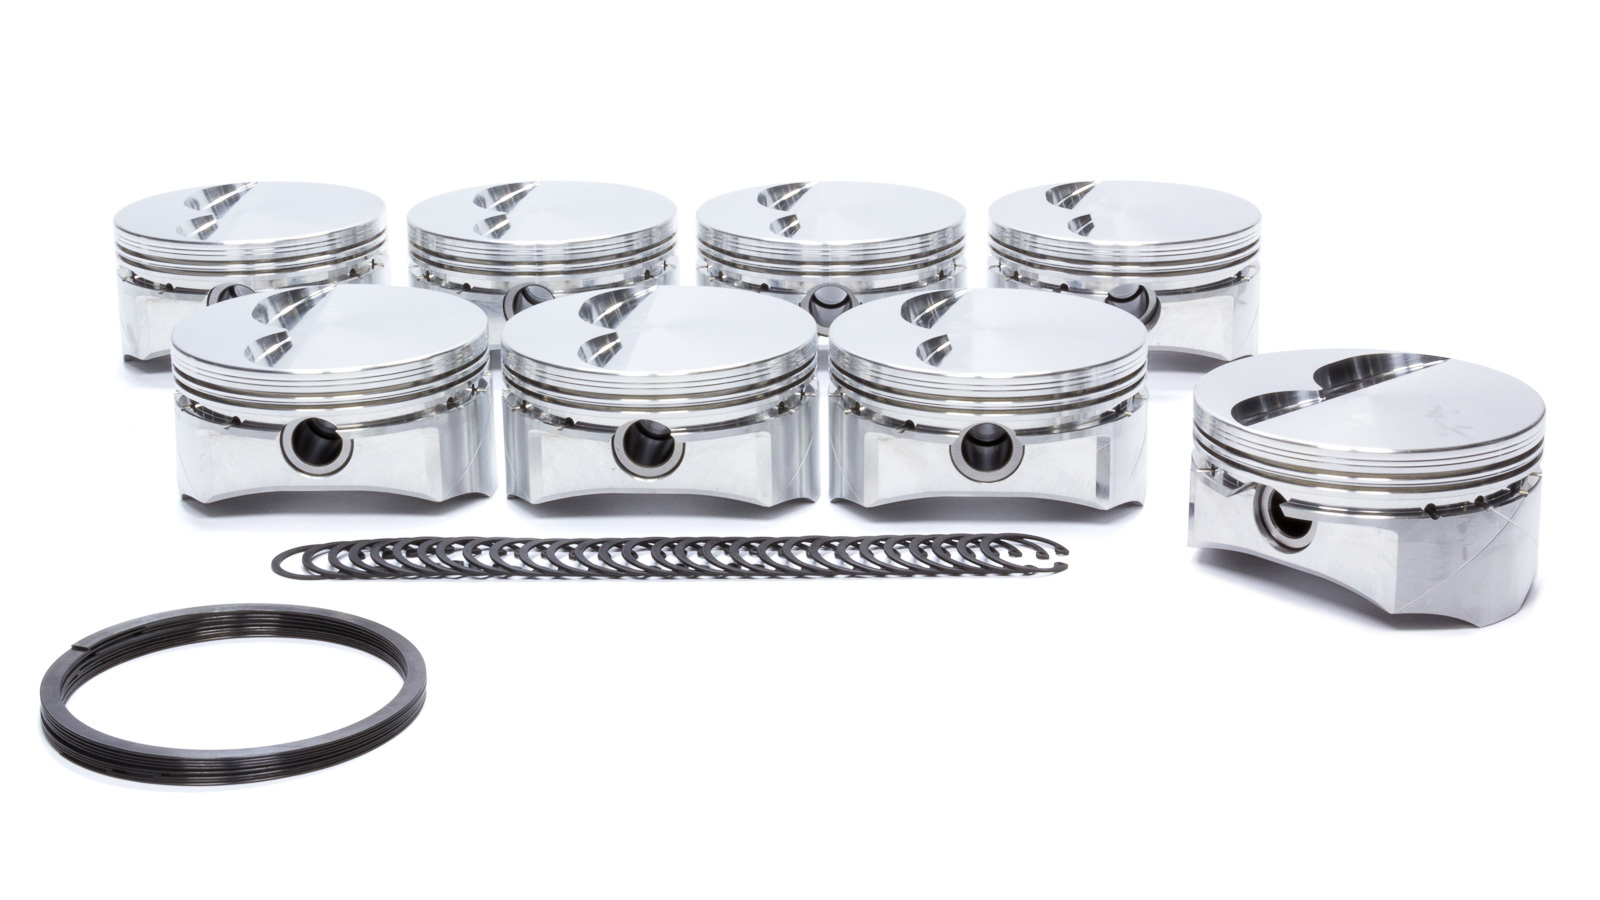 DSS Racing 4300X-4030 Piston, GSX Series, Forged, 4.030 in Bore, 1.5 x 1.5 x 4.0 mm Ring Grooves, Minus 3.0 cc, Small Block Ford, Set of 8